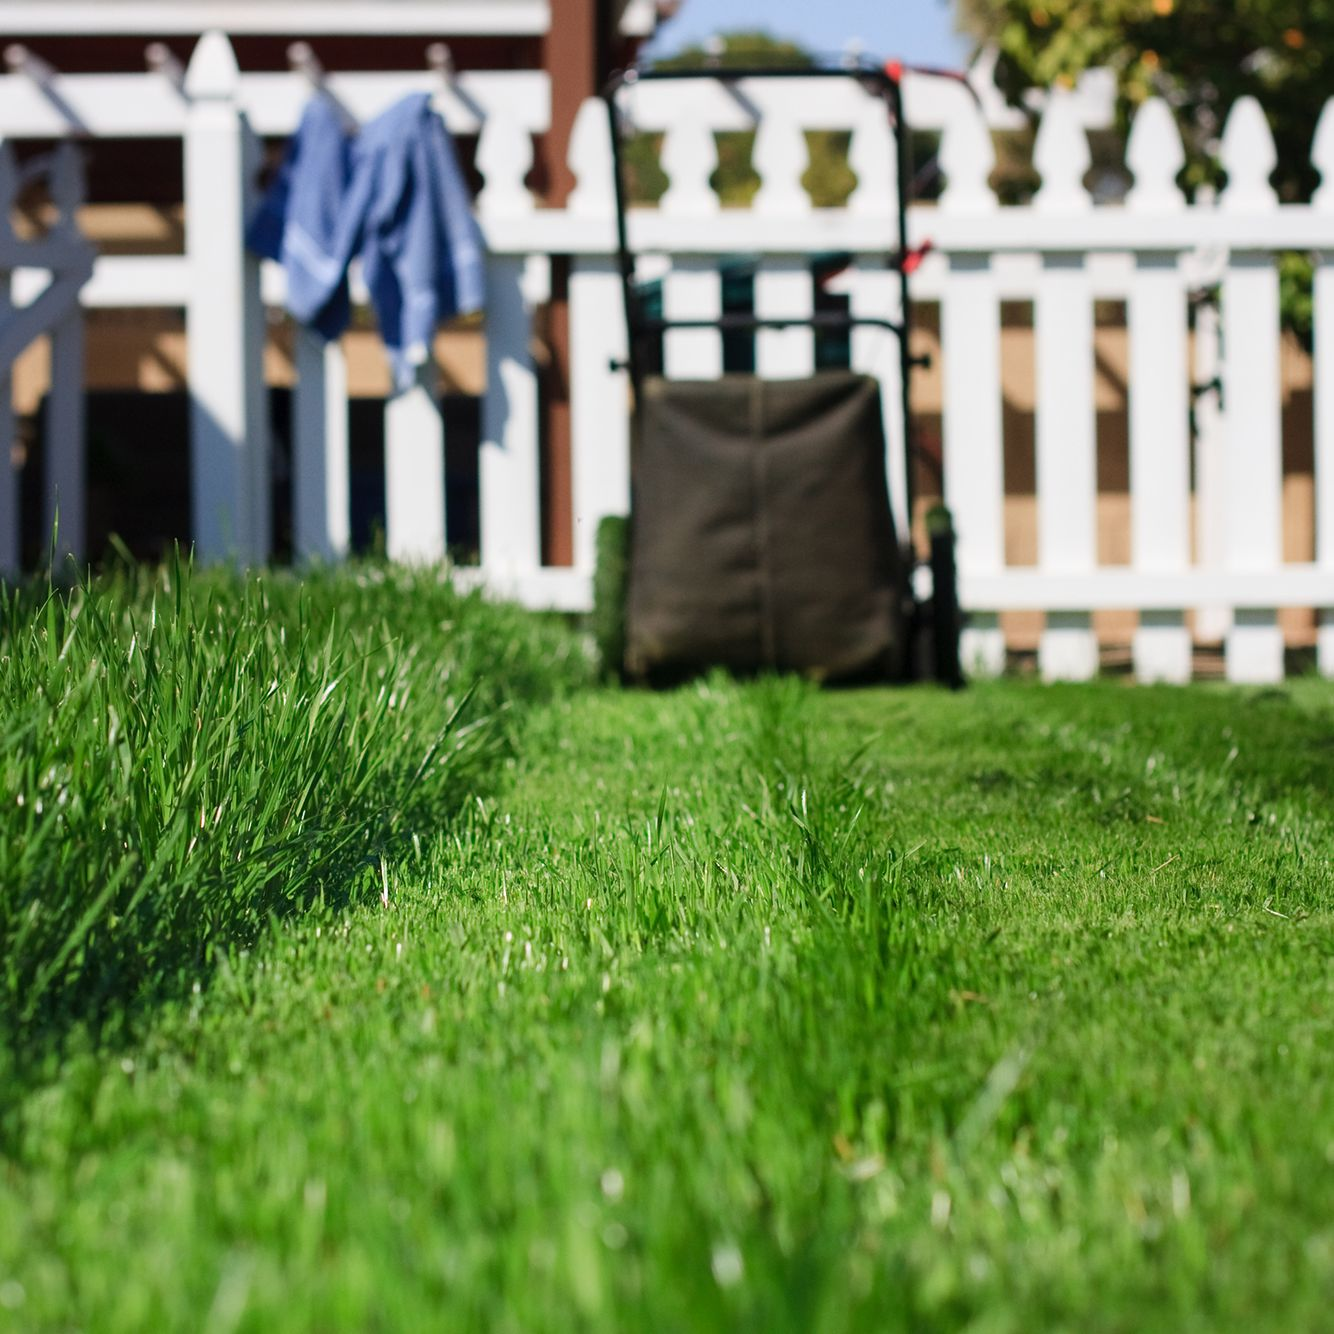 mulching mowers allow you to use lawn grass clippings